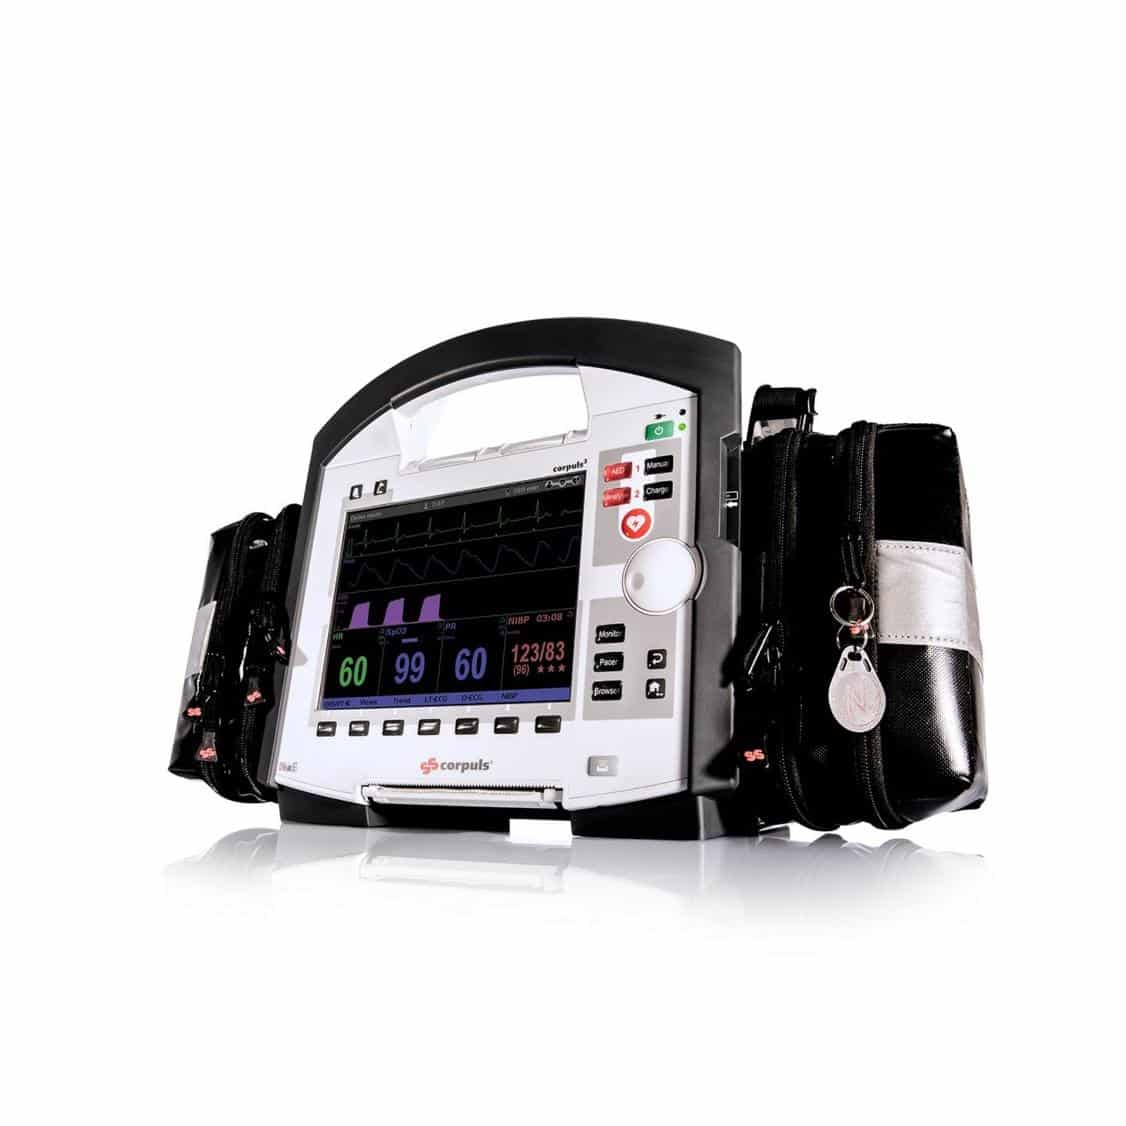 ICATT Air Ambulance patient cardiac monitor during transportation, Medical Emergency Air Ambulance Services in India